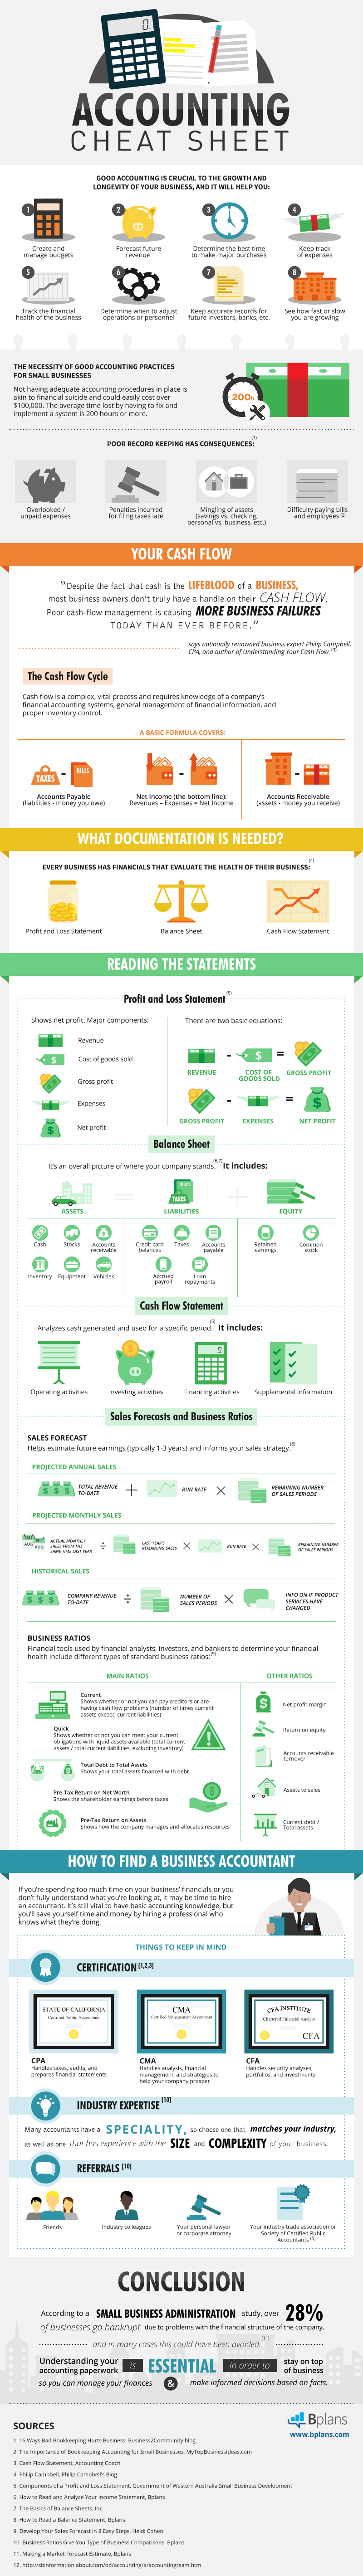 With many small businesses going bankrupt, your business should have an accountant. Here is our accounting cheat sheet to help you get started.